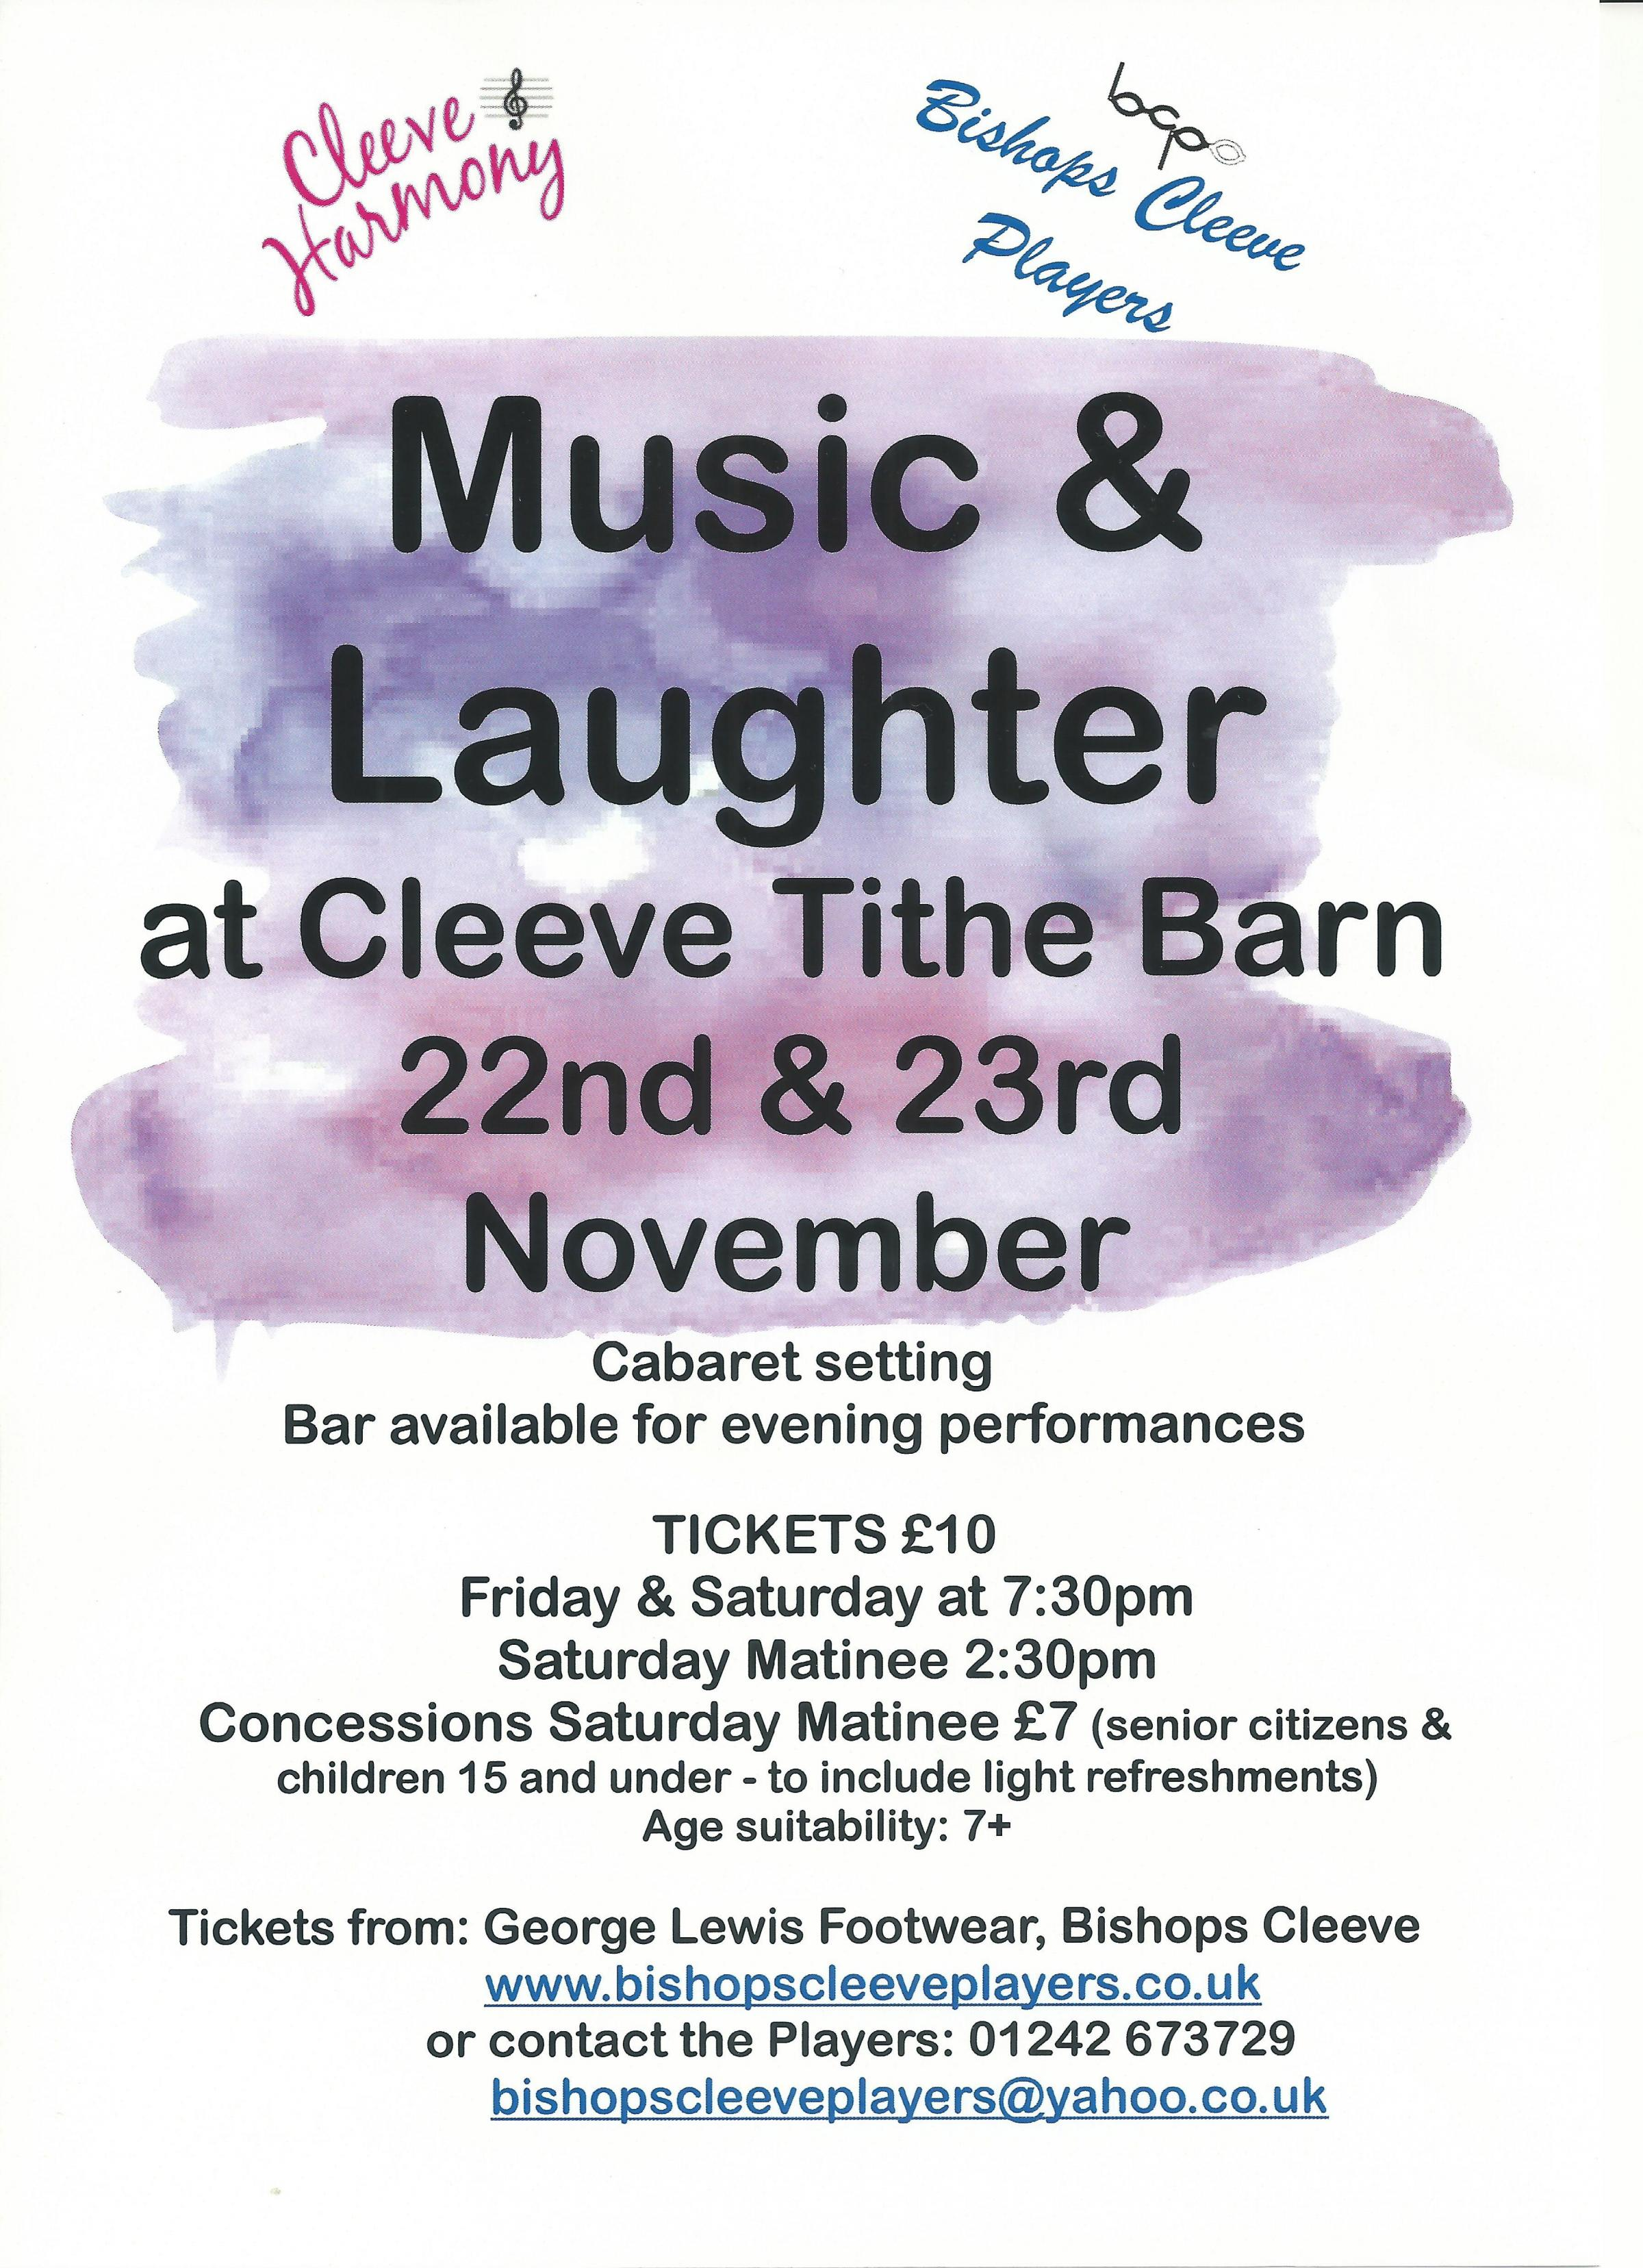 Music & Laughter at Cleeve Tithe Barn